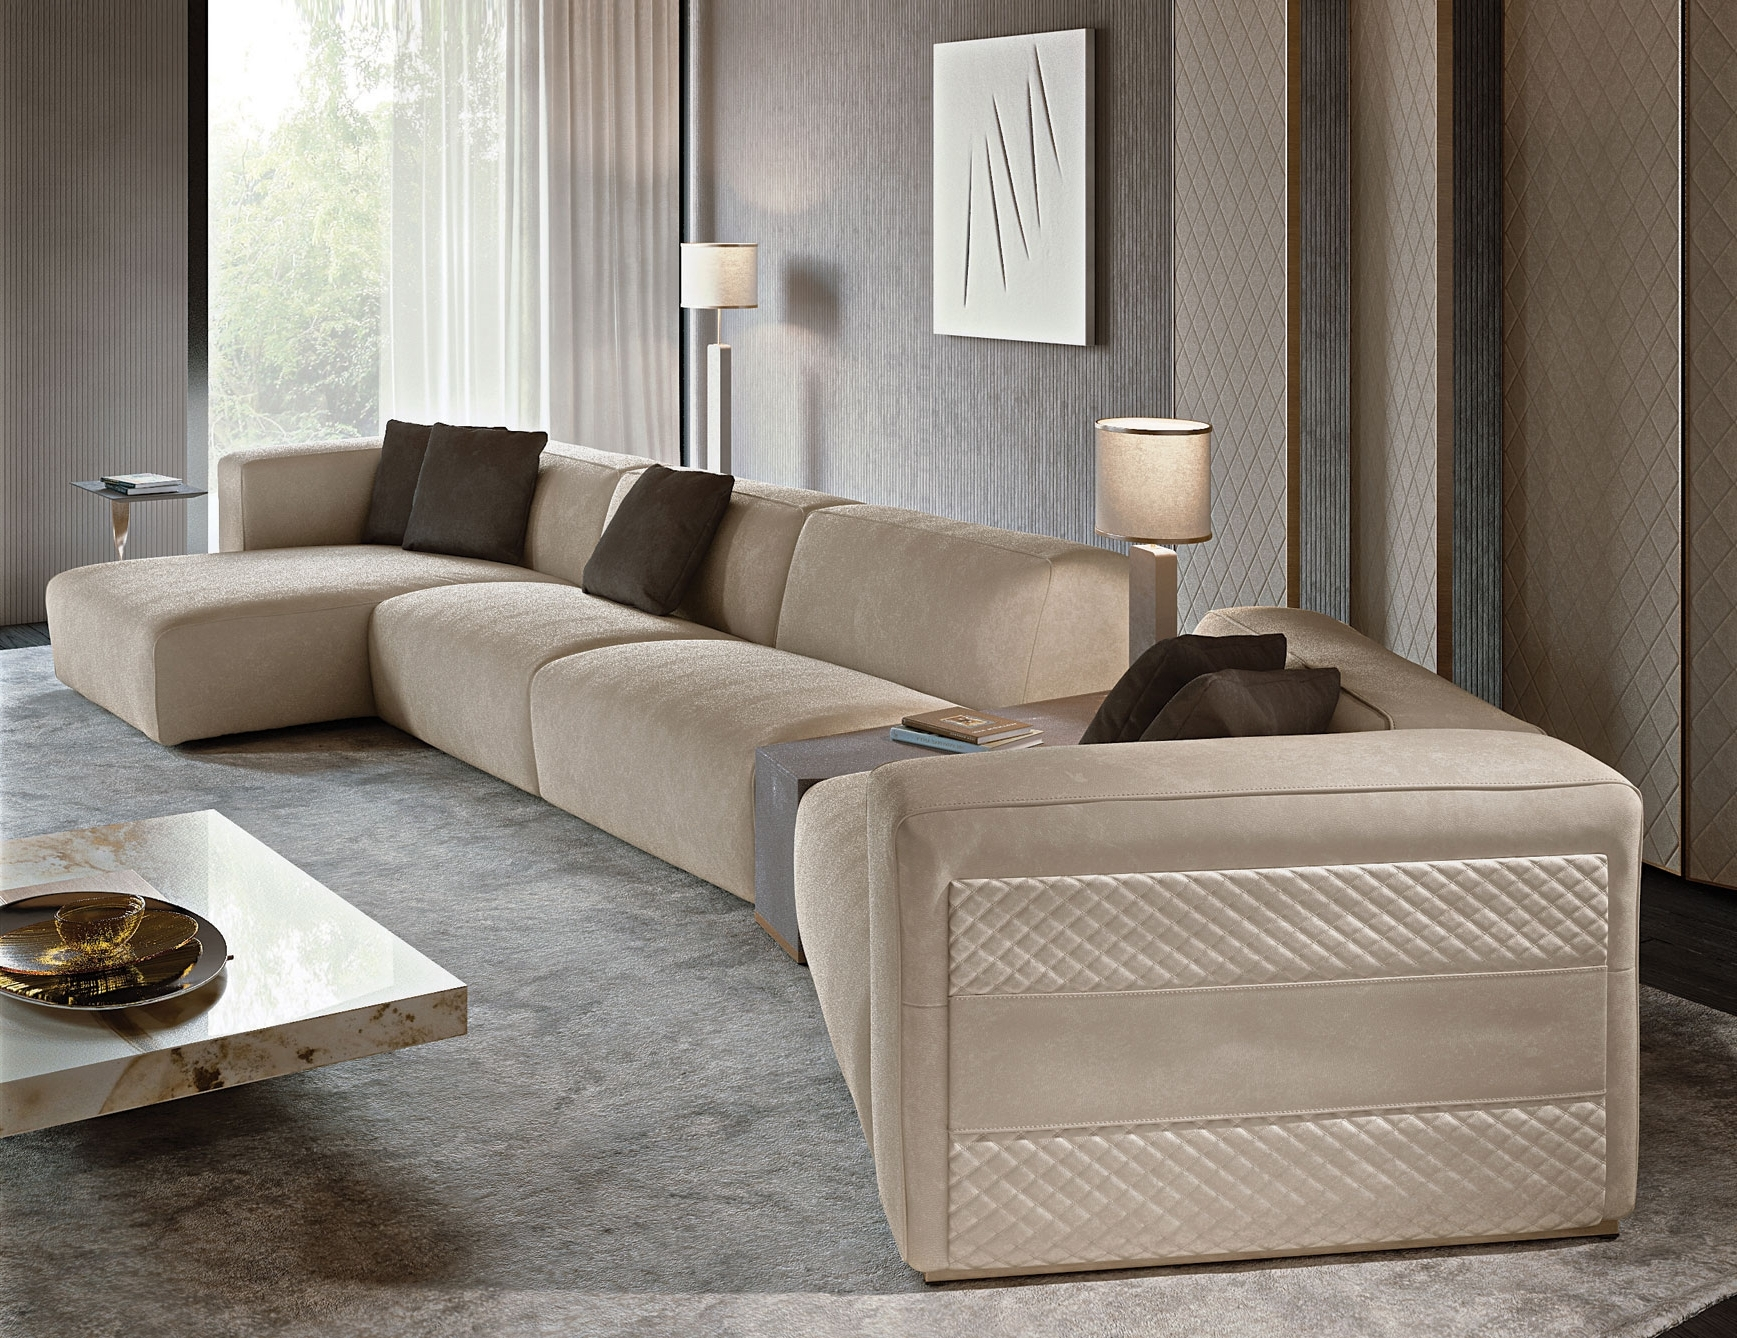 Most Recent High End Sofas Intended For Nella Vetrina Rugiano Freud Sectional Sofa In Suede (View 15 of 20)